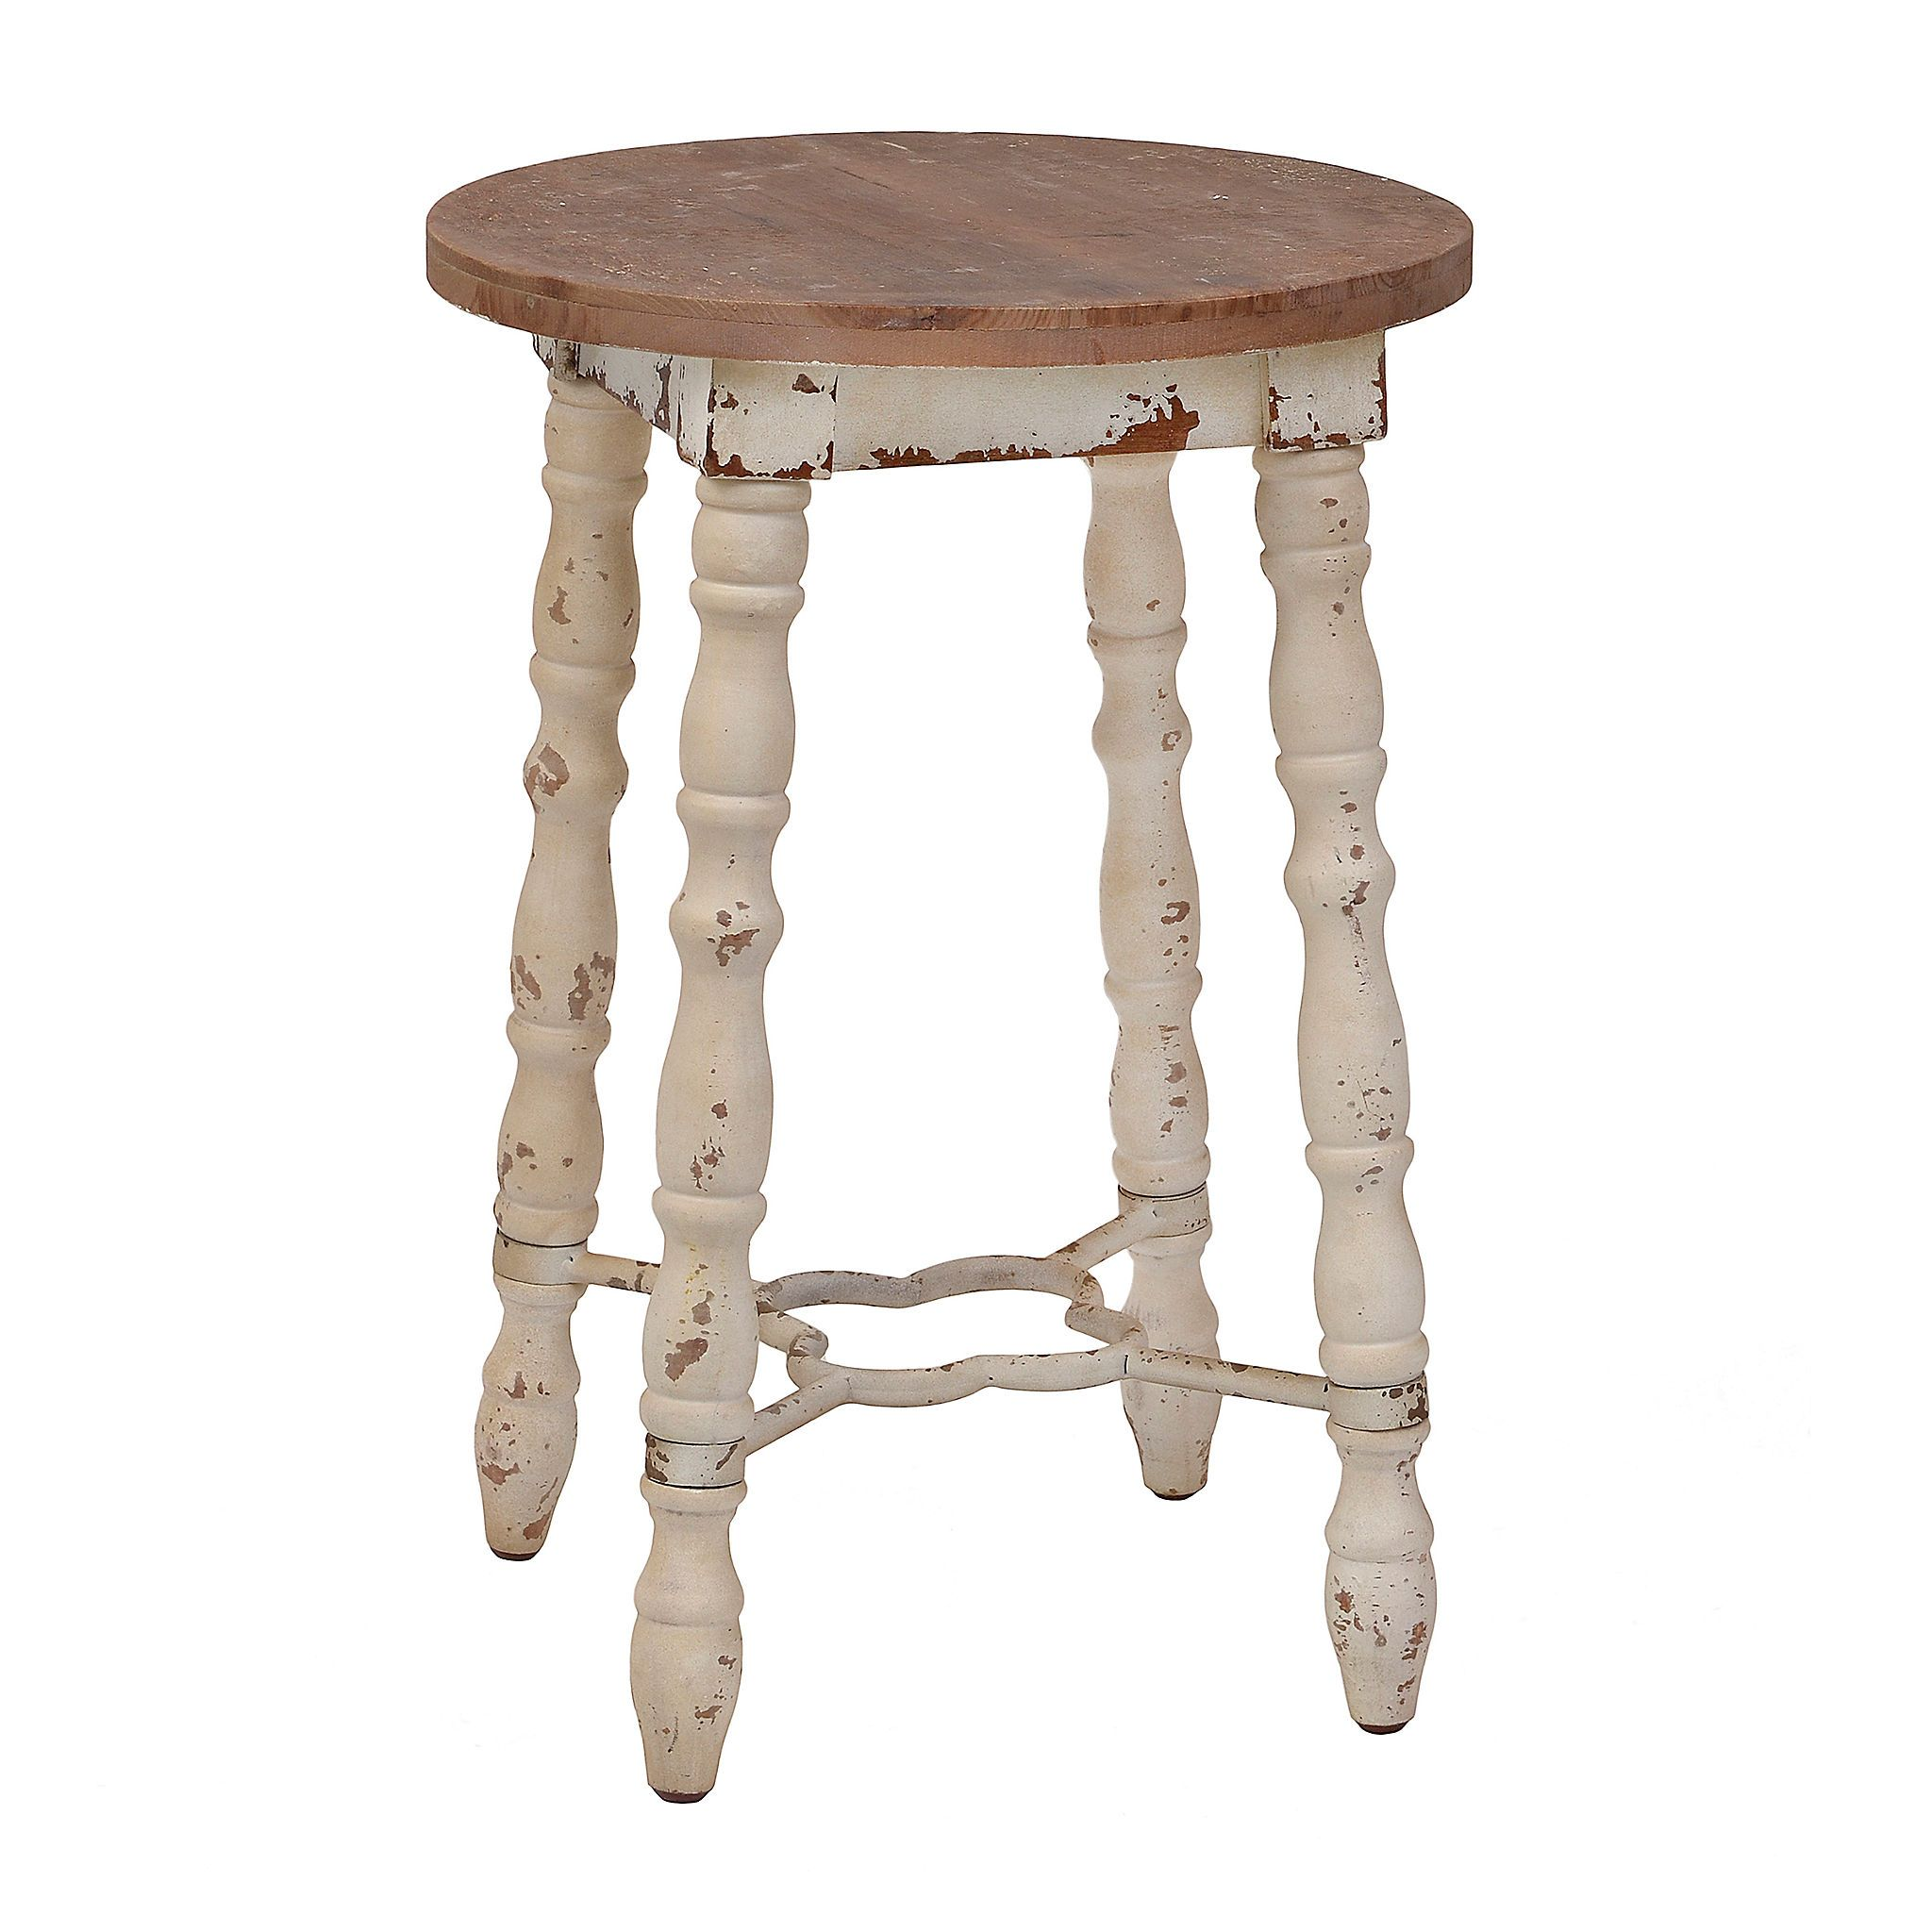 Product Details Distressed Cream Cottage Spindle Barstool